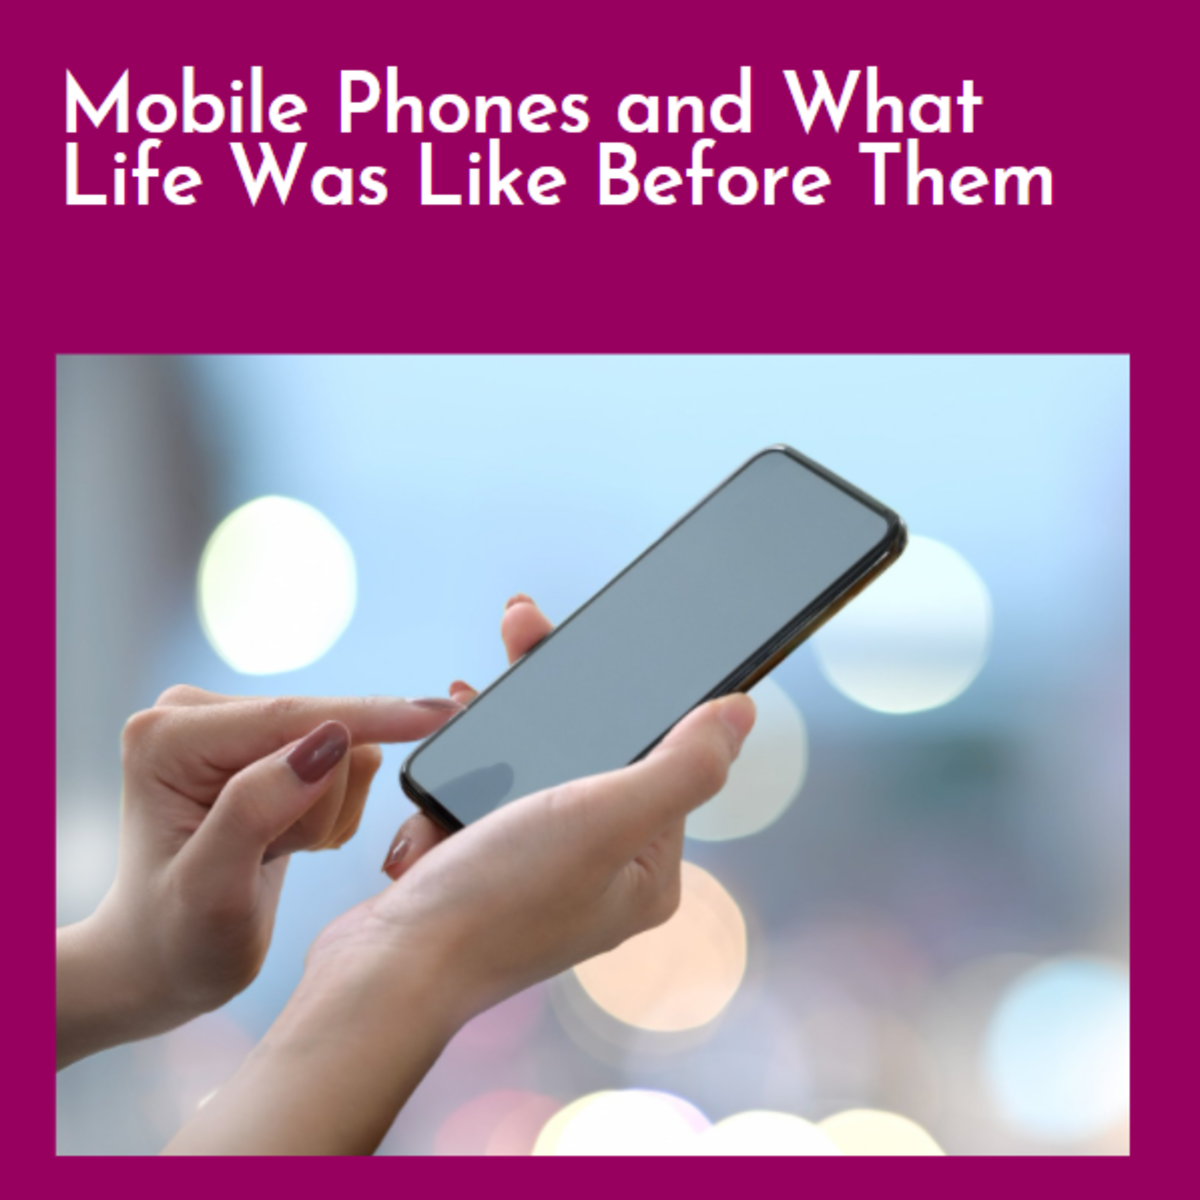 Mobile Phones and What Life Was Like Before Them